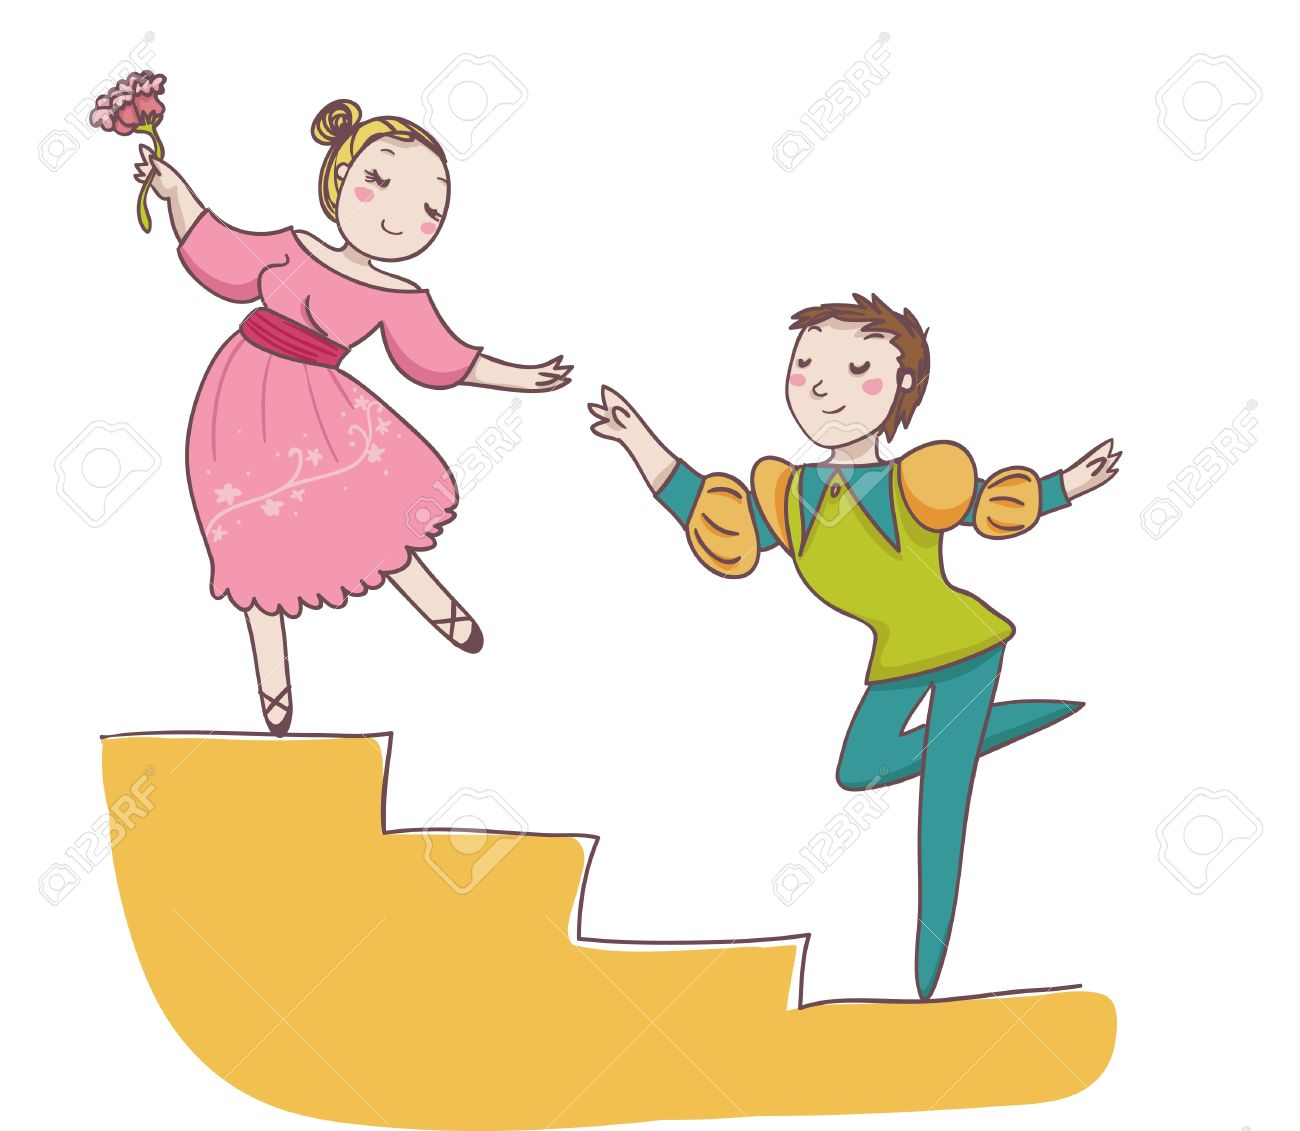 Romeo And Juliet Stock Photos Images. Royalty Free Romeo And ...